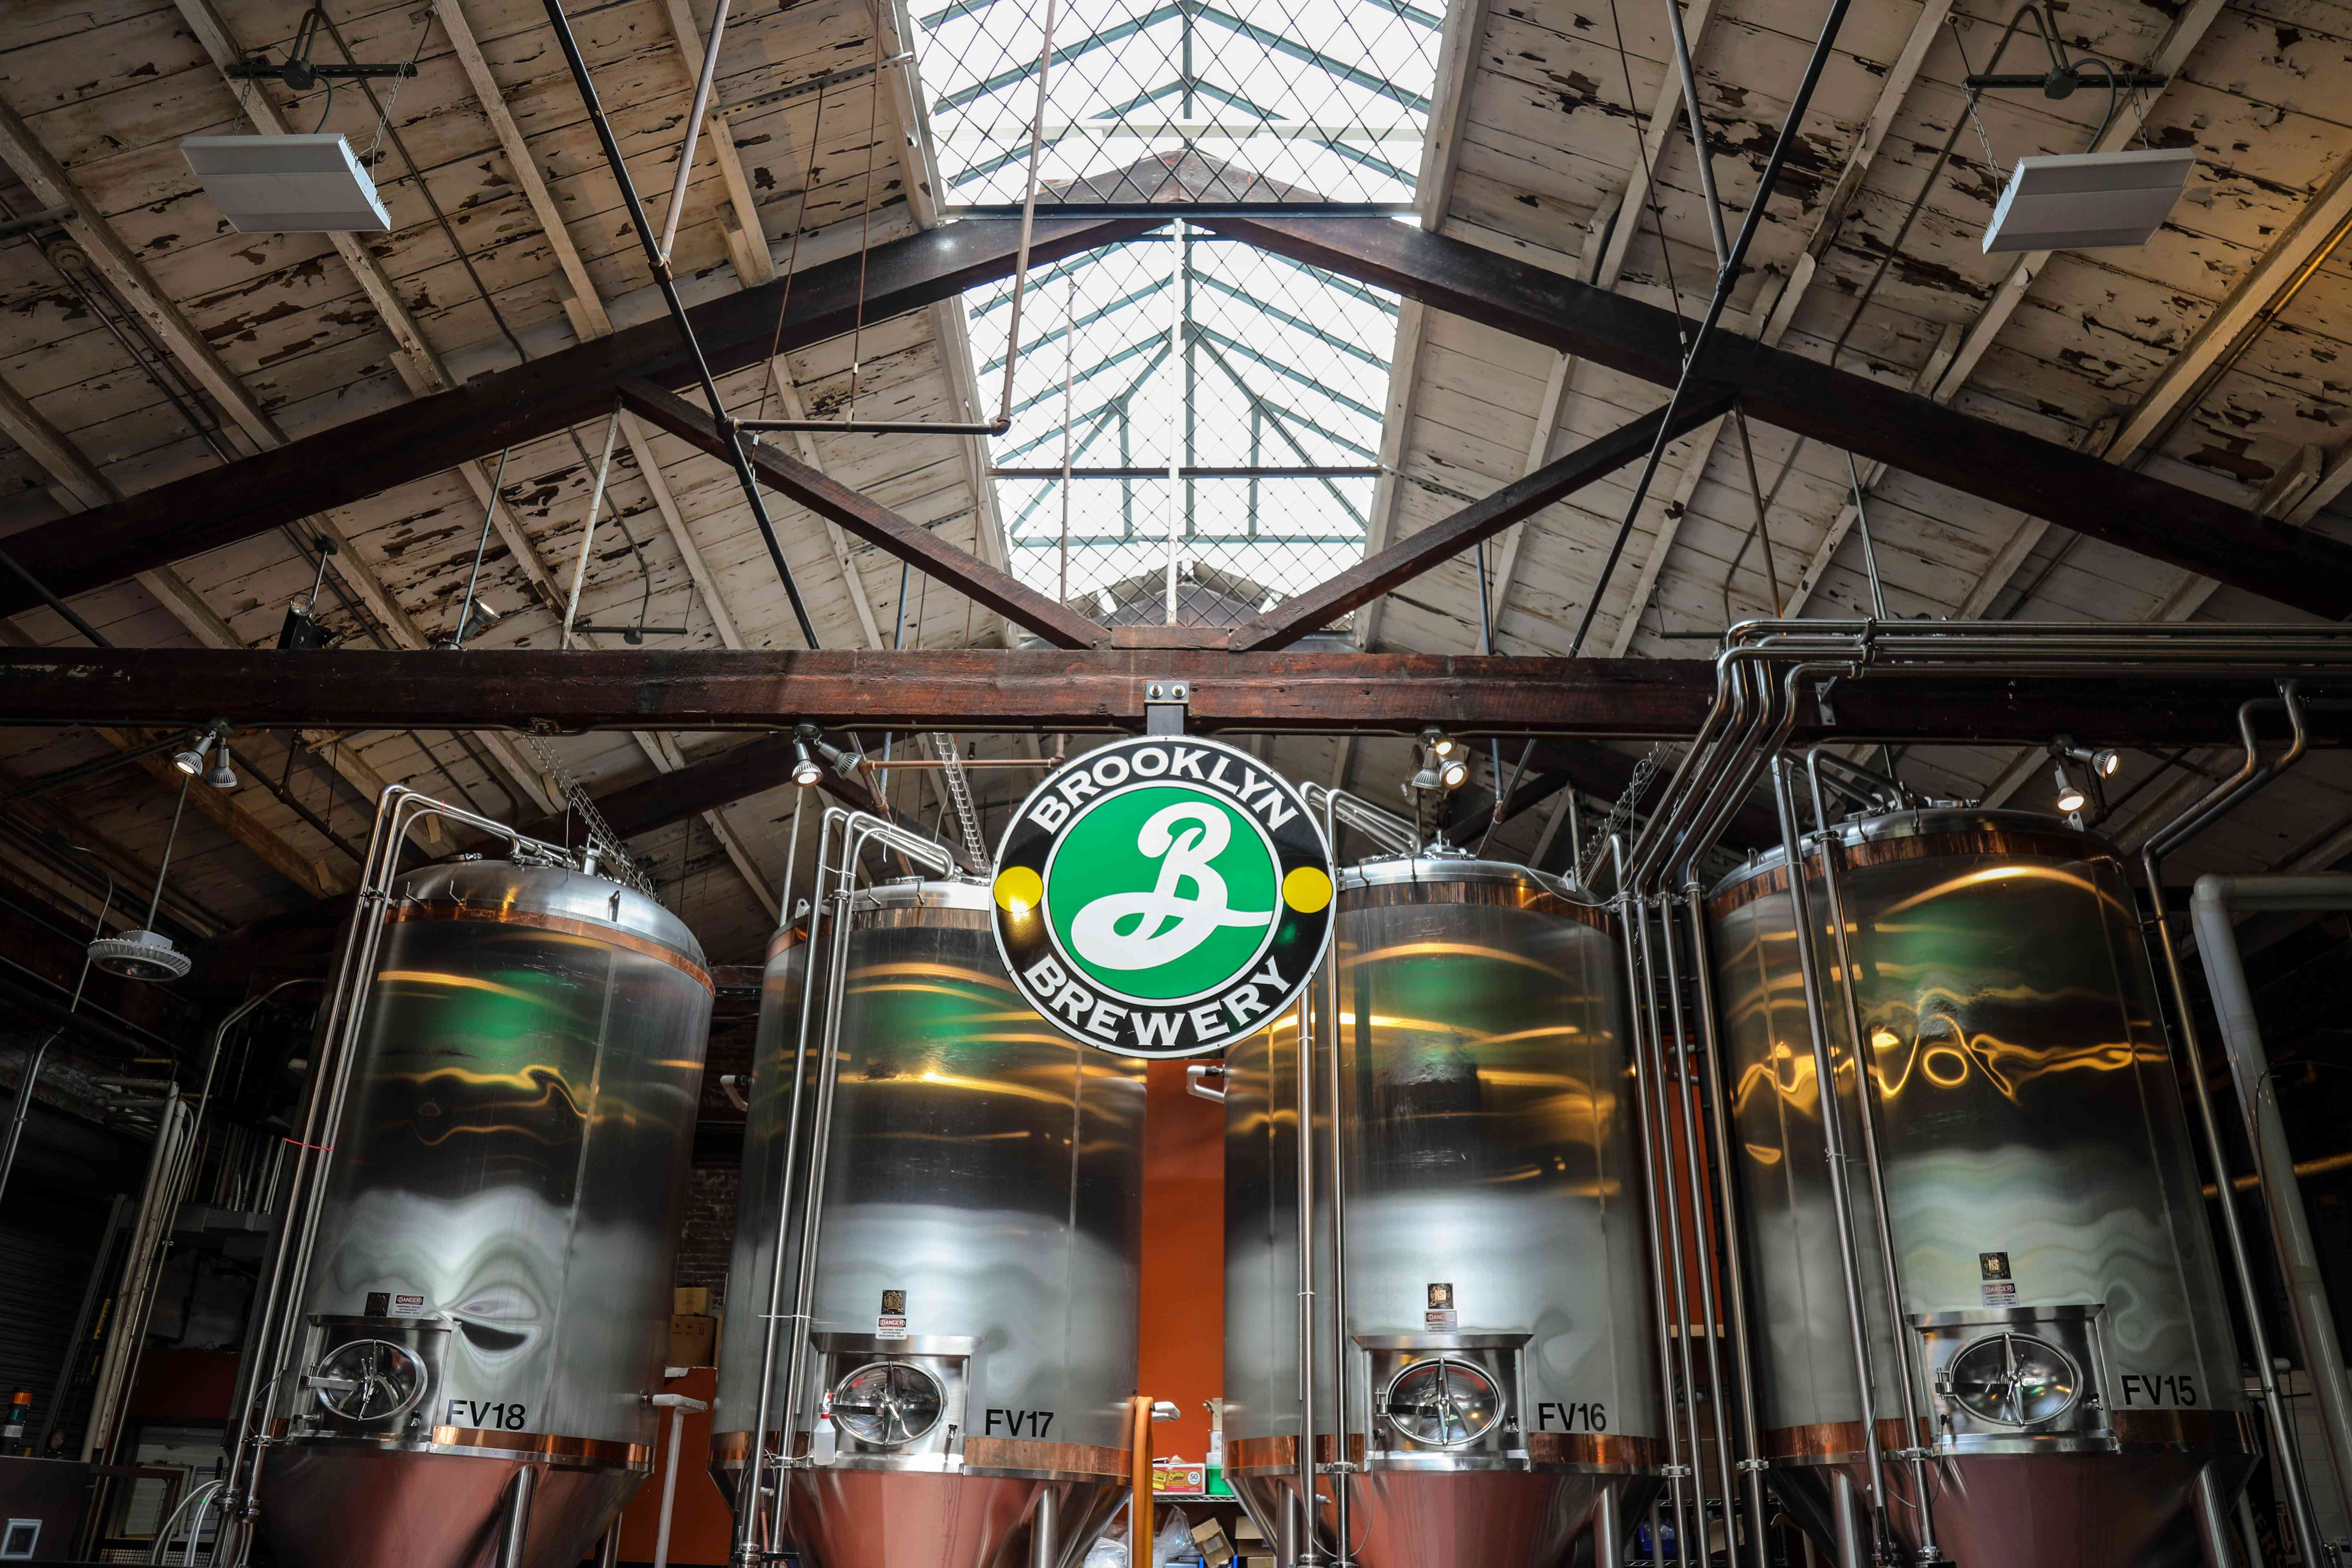 Large tanks of beer in the Brooklyn Brewery